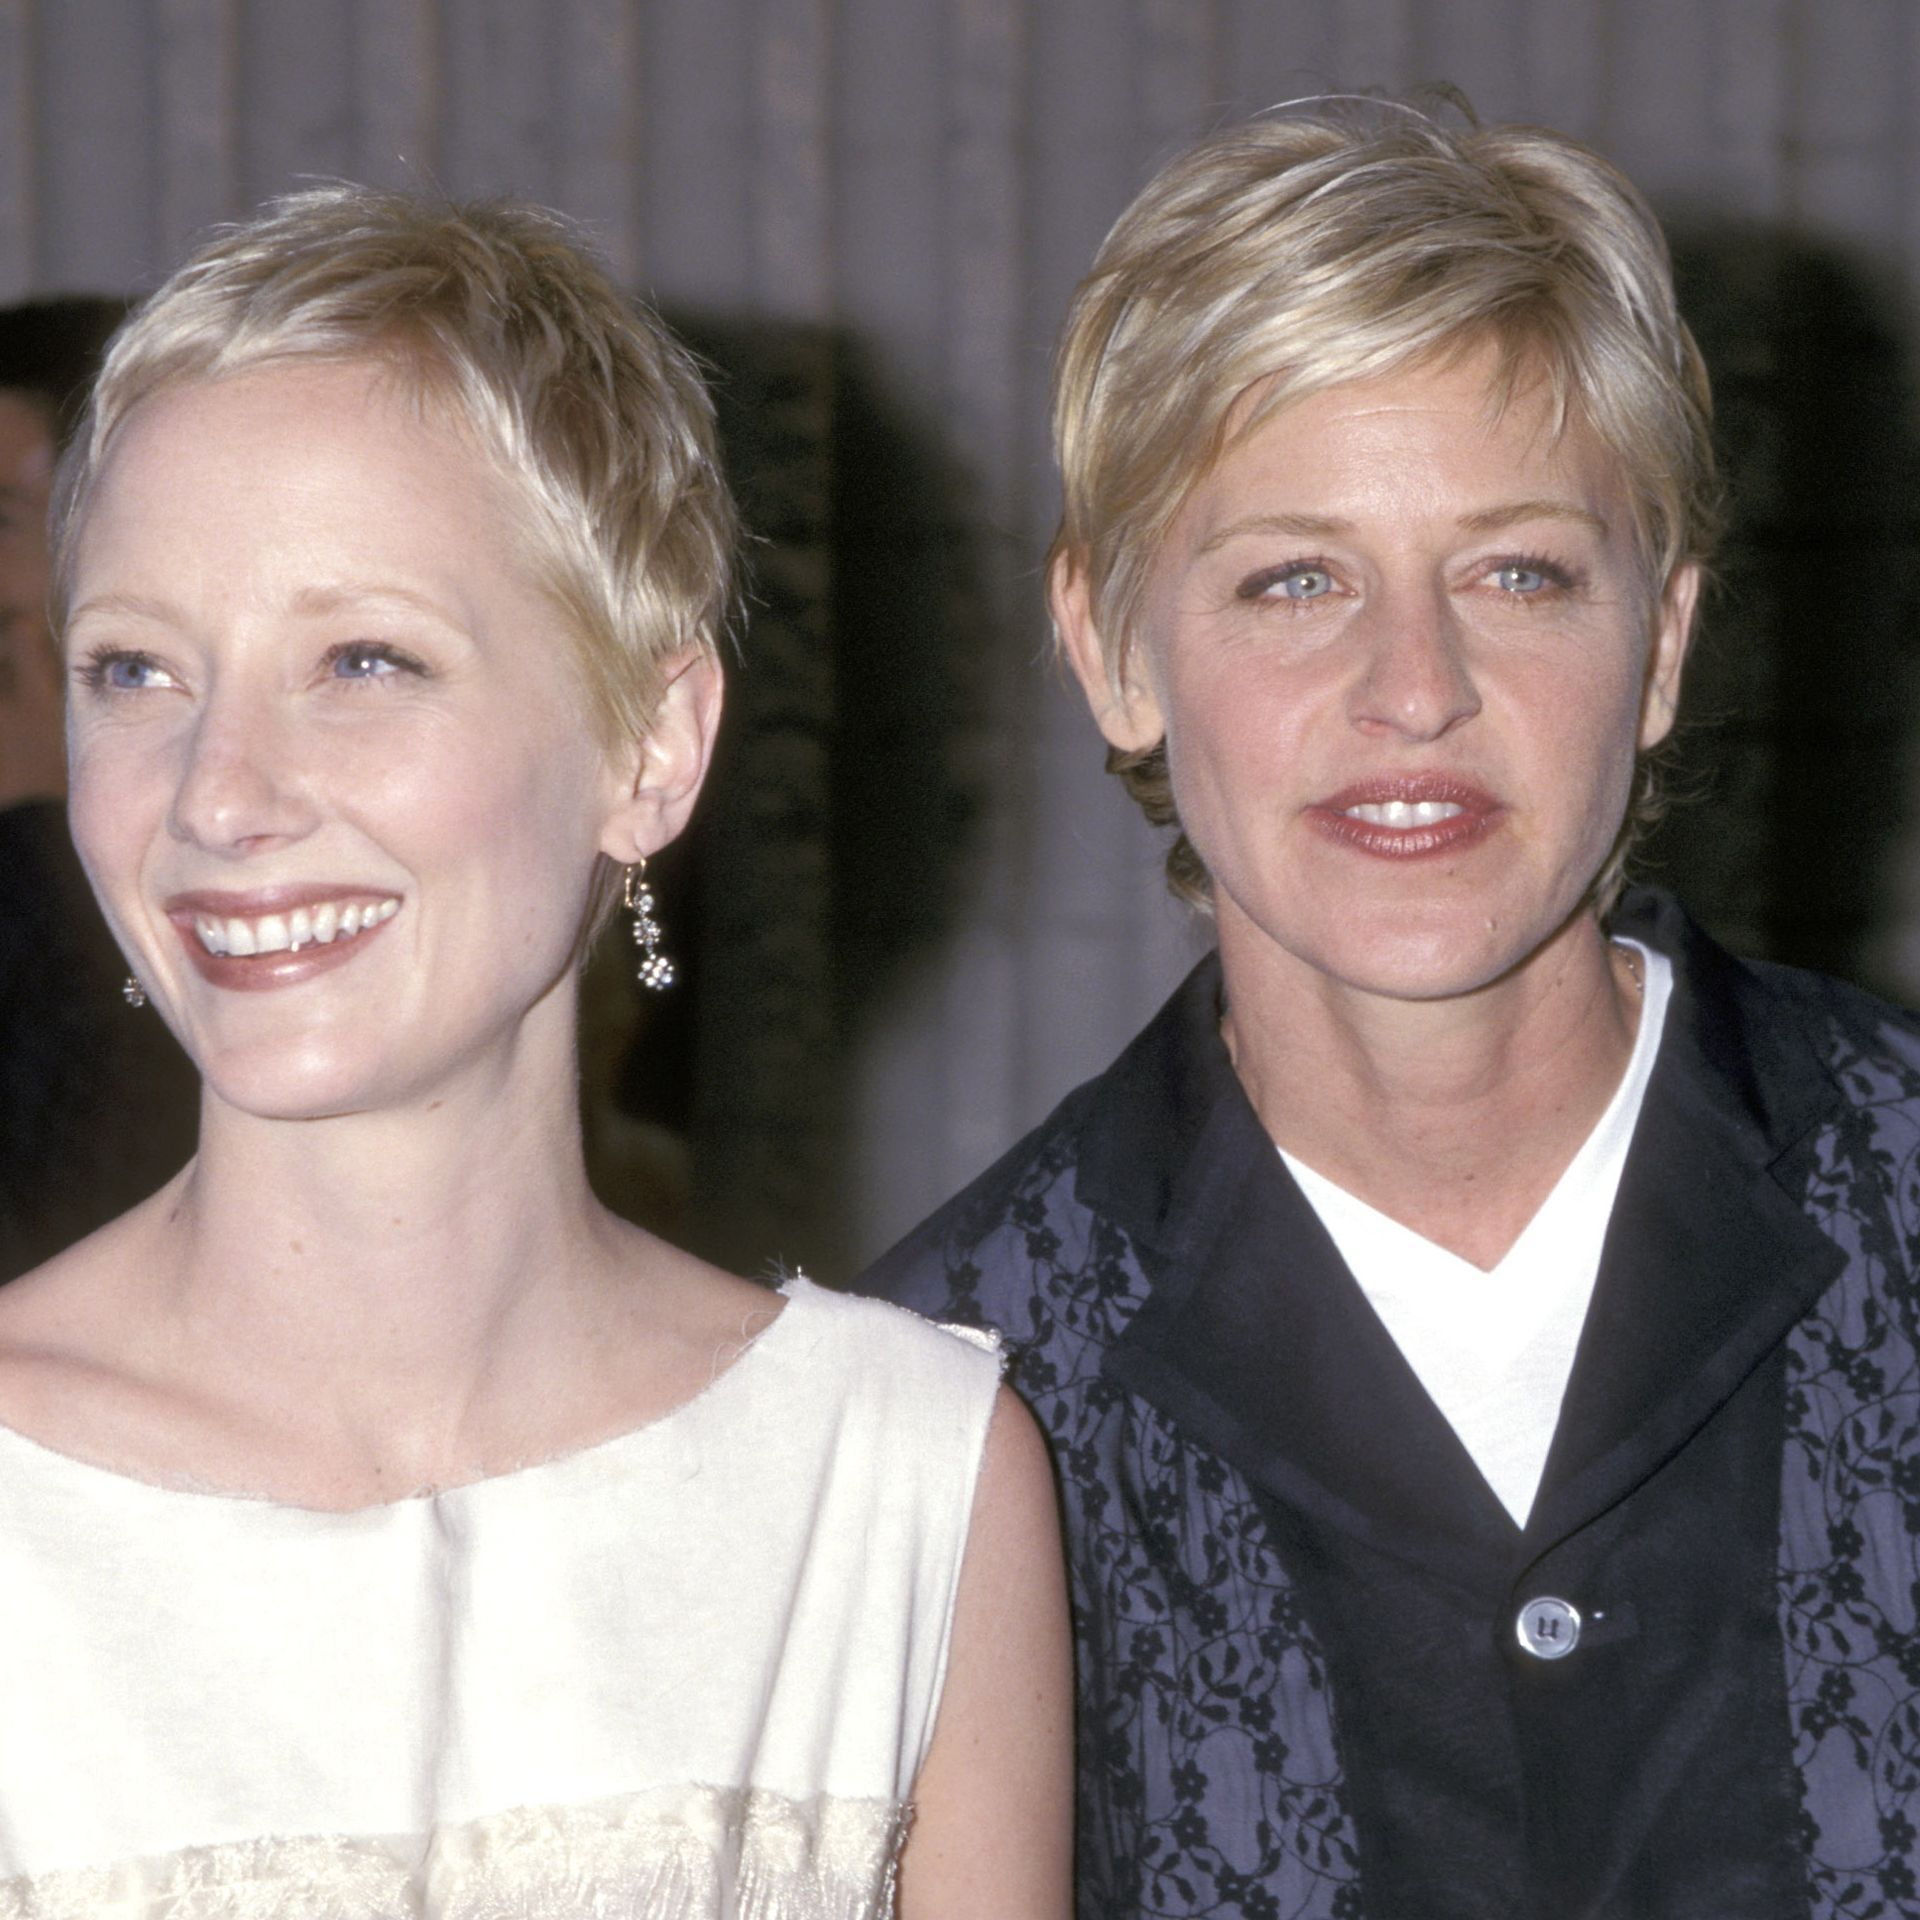 Why did ellen degeneres and anne heche break up